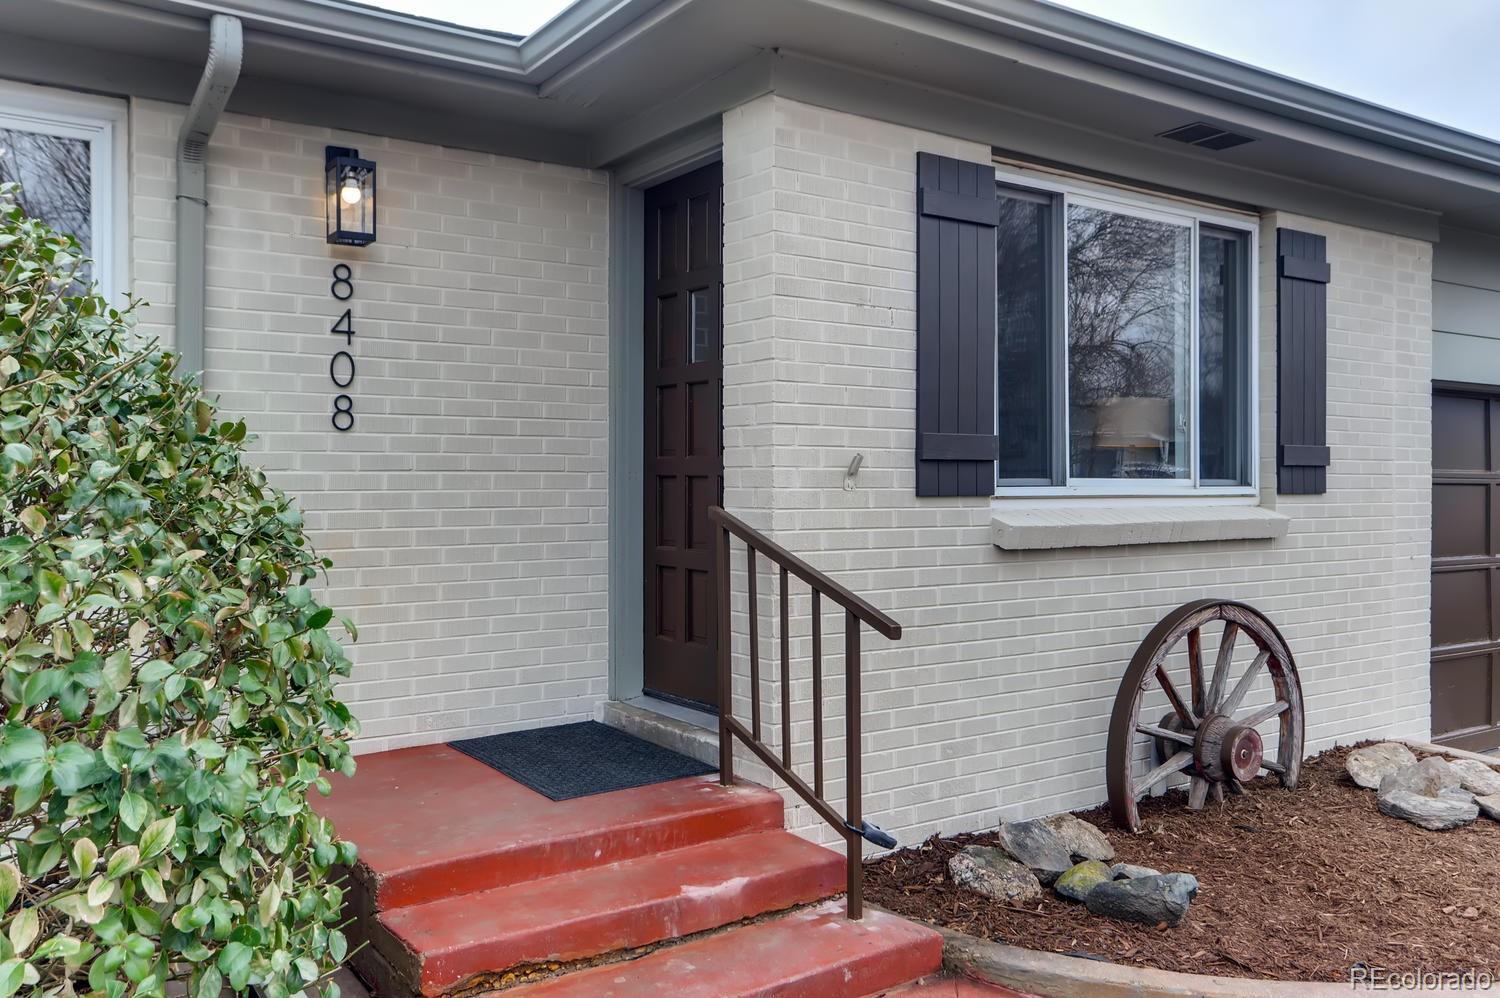 MLS# 2830054 - 2 - 8408 W 62nd Place, Arvada, CO 80004